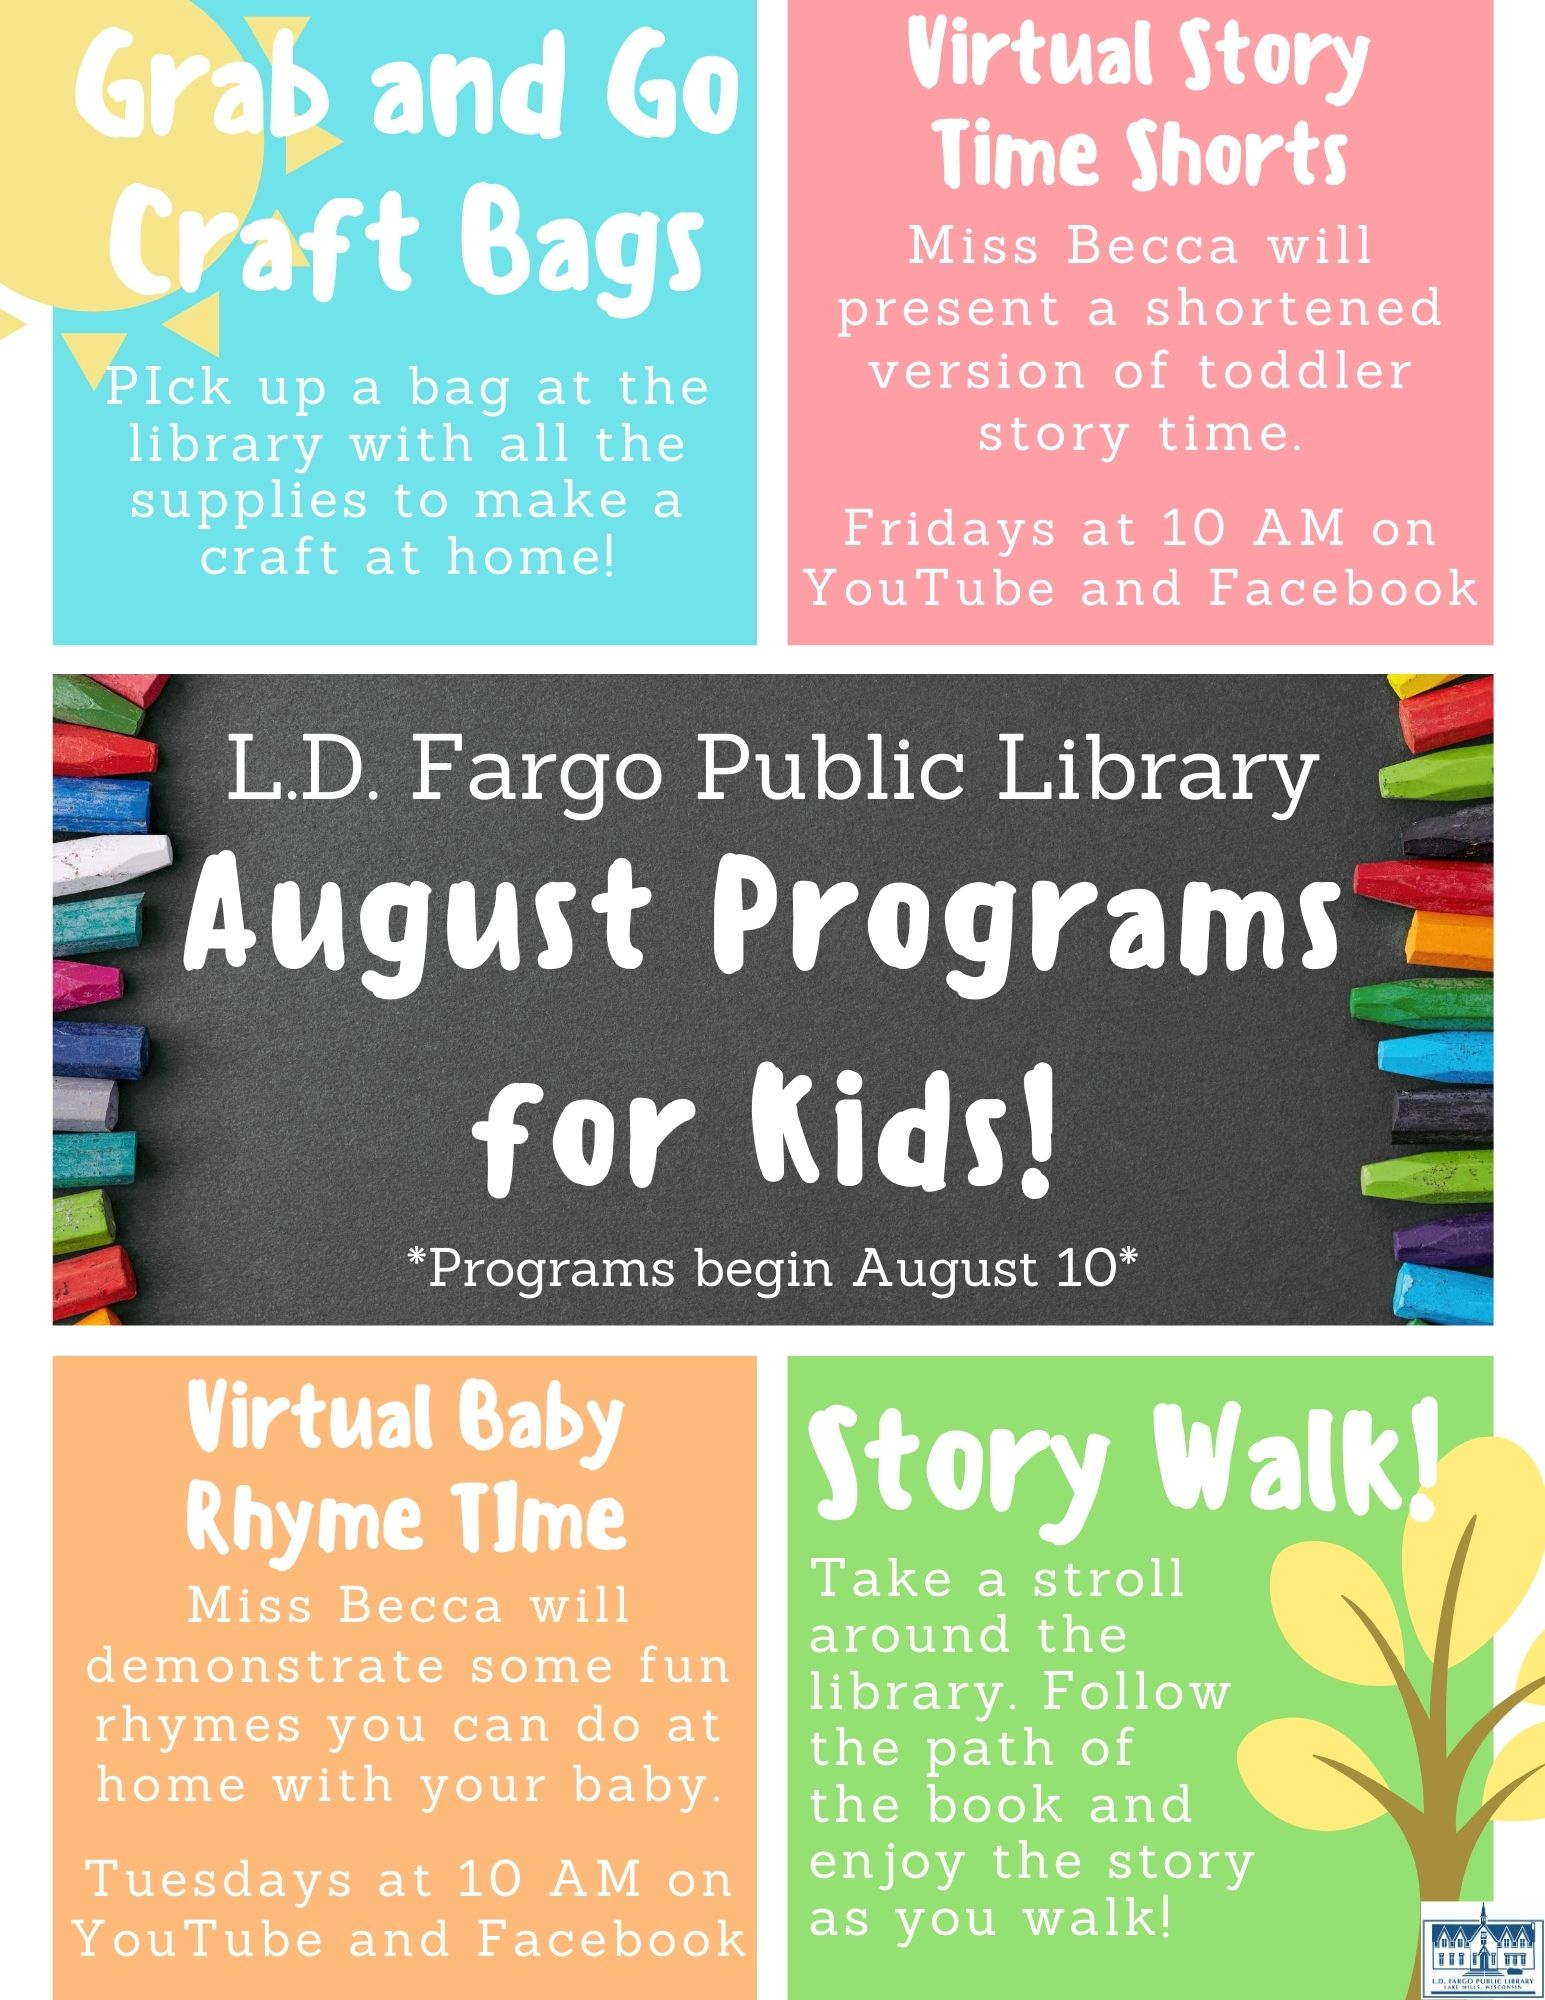 August Programs for kids (starting Aug. 10).  Grab and Go Craft Kits: PIck up a bag at the library with all the supplies to make a craft at home! Virtual Story Time Shorts: Miss Becca will present a shortened version of toddler story time.  Fridays at 10 AM on YouTube and Facebook. Virtual Baby Rhyme TIme: Miss Becca will demonstrate some fun rhymes you can do at home with your baby.  Tuesdays at 10 AM on YouTube and Facebook. Story Walk: Take a stroll around the library. Follow the path of the book and enjoy the story as you walk!